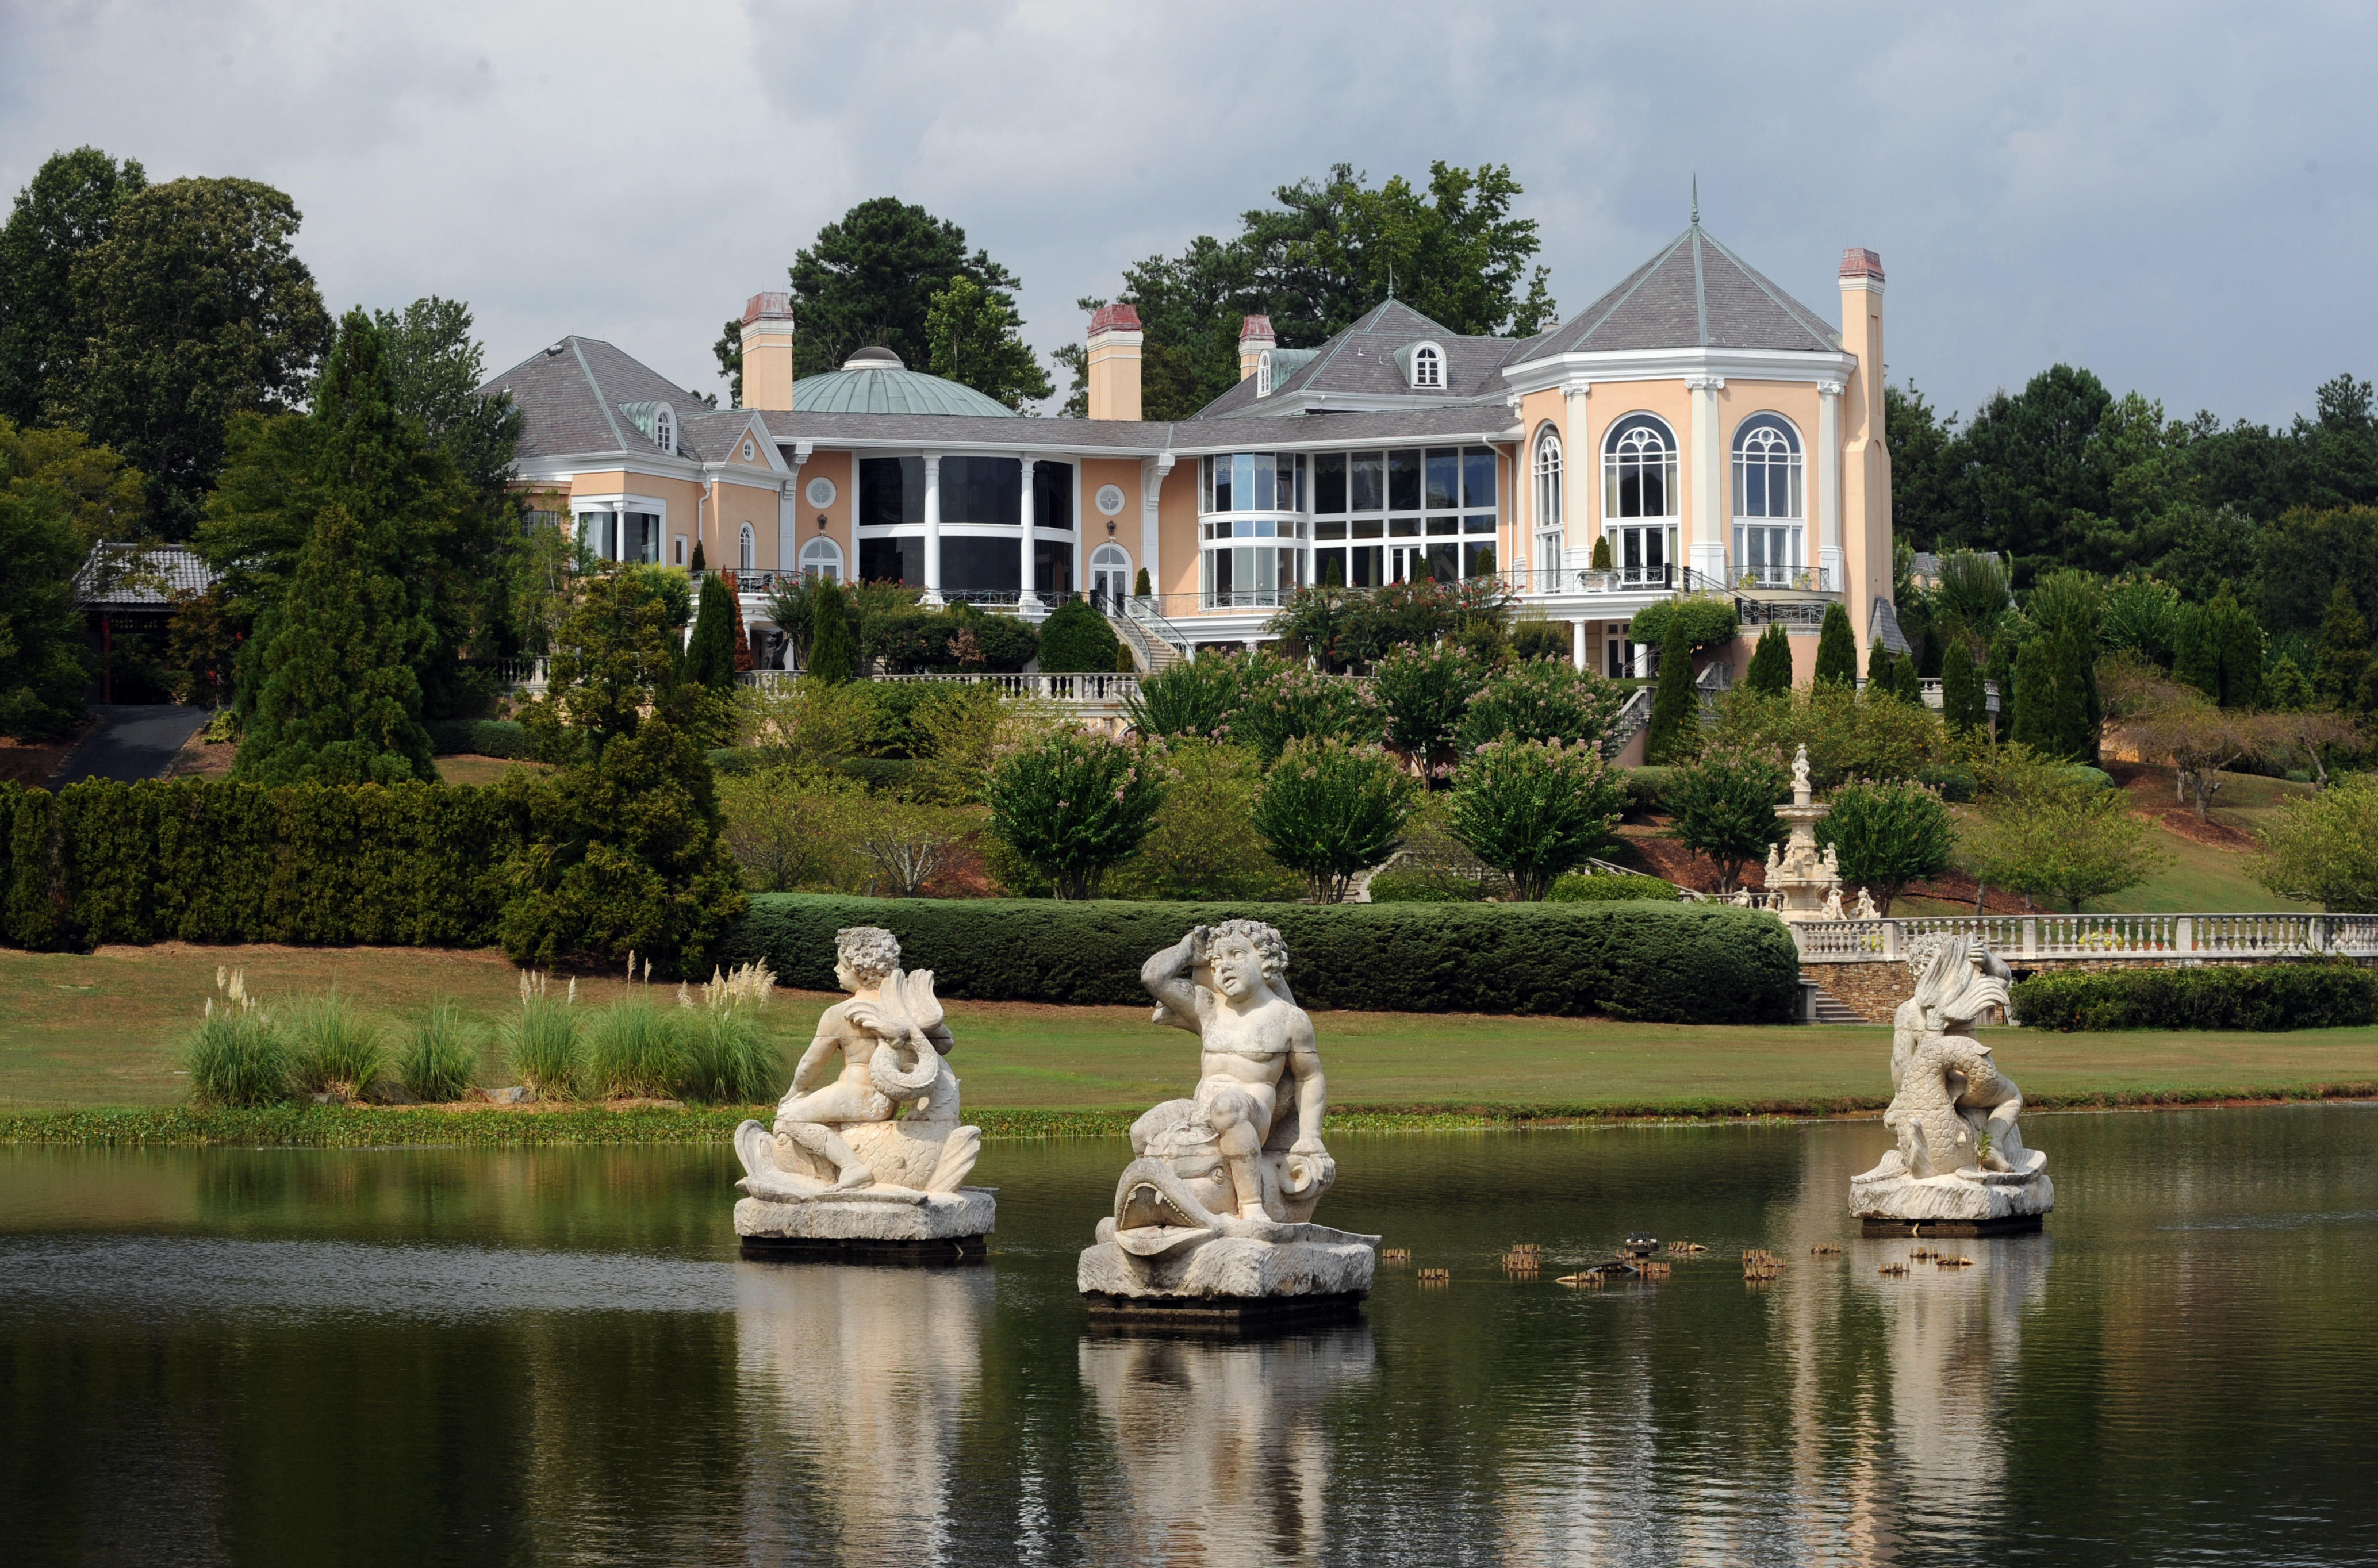 10. Johns Creek, Georgia: Along with a median income of $109,132, Johns Creek is known for the Dean Gardens estate. Once owned by actor  Tyler Perry, it is now in the hands of a developer.